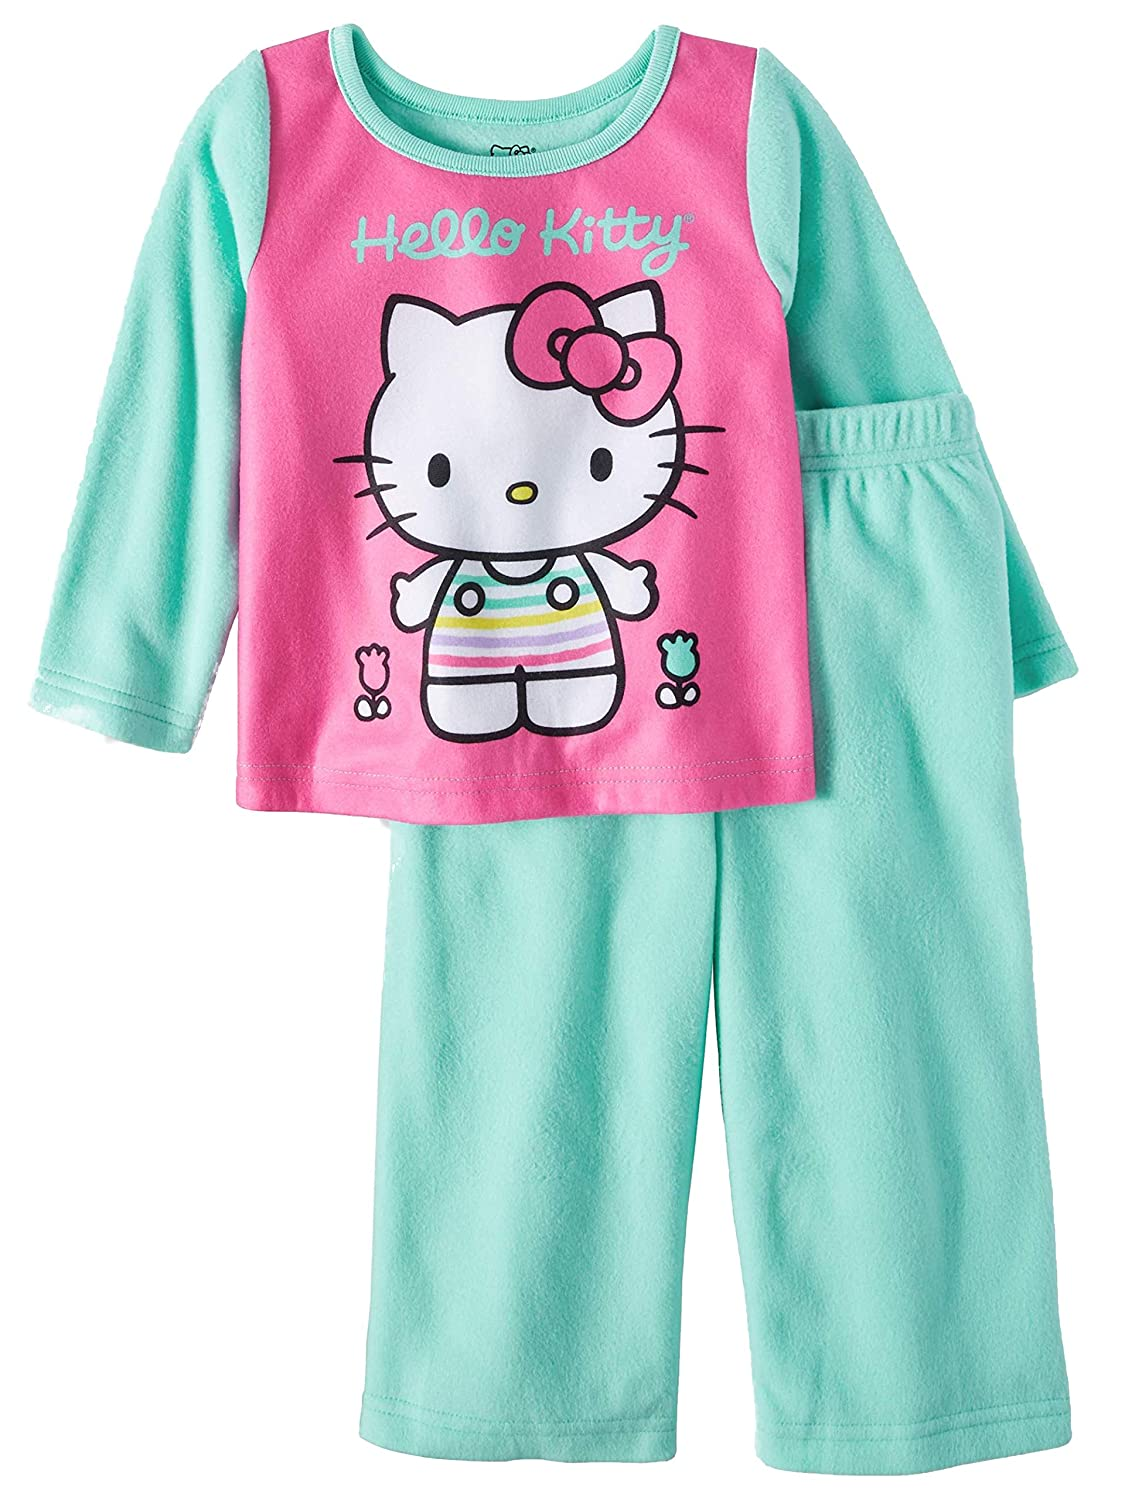 d68196b6b Amazon.com  Hello Kitty Toddler Girls 2 Piece Sleepwear Pajama Set ...